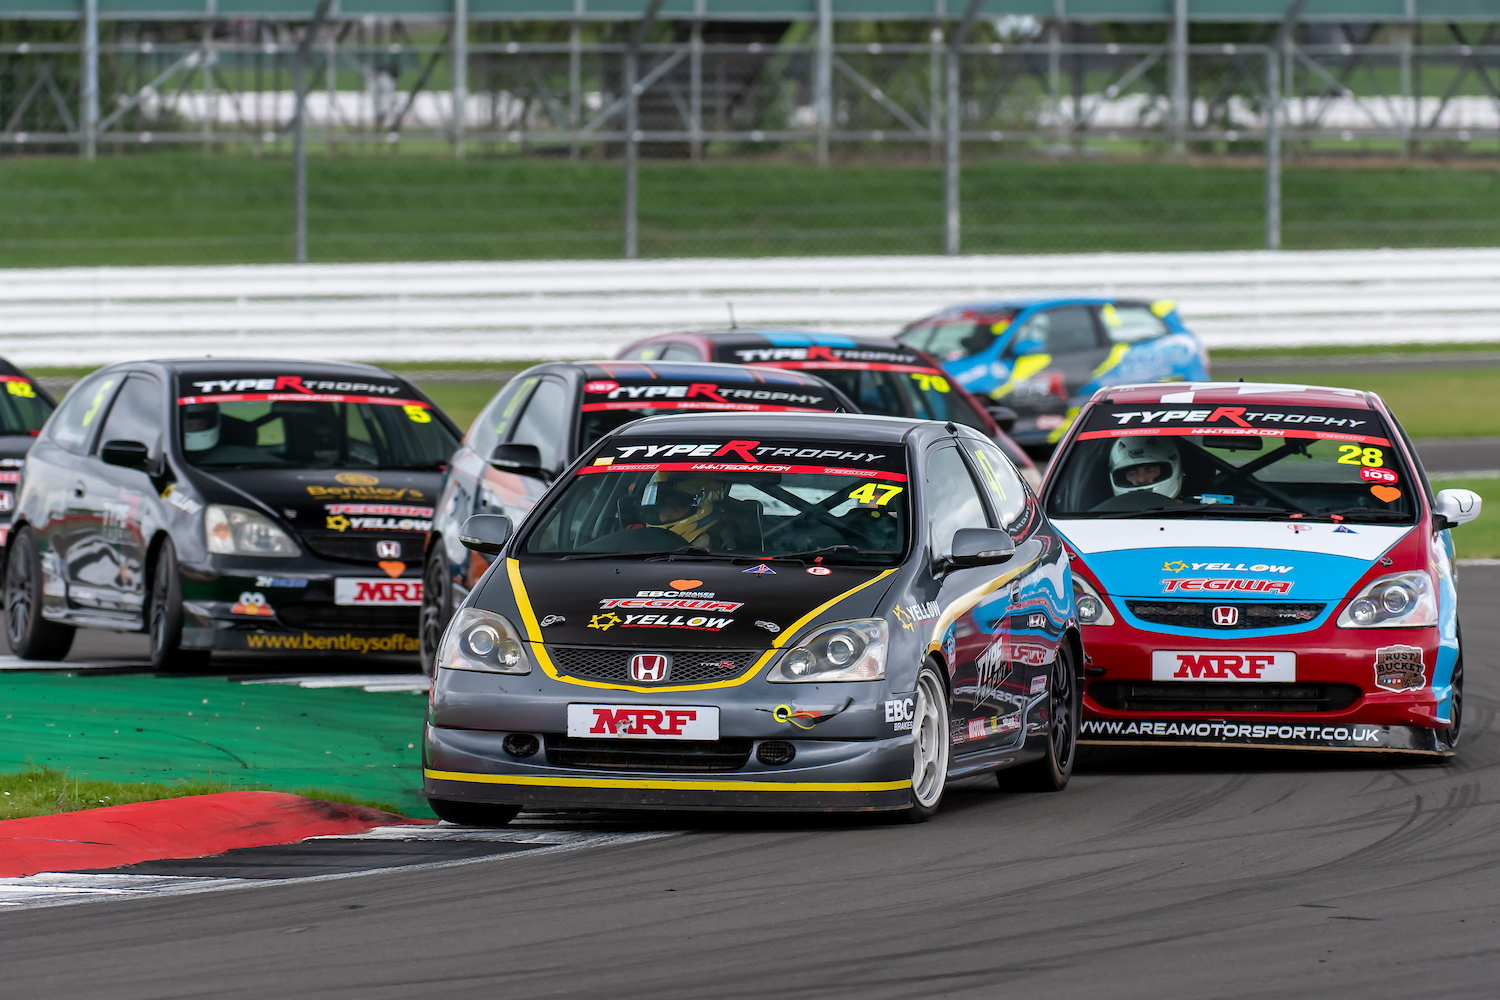 Type R Trophy Racer Clinches Podium Finish at Silverstone International Round